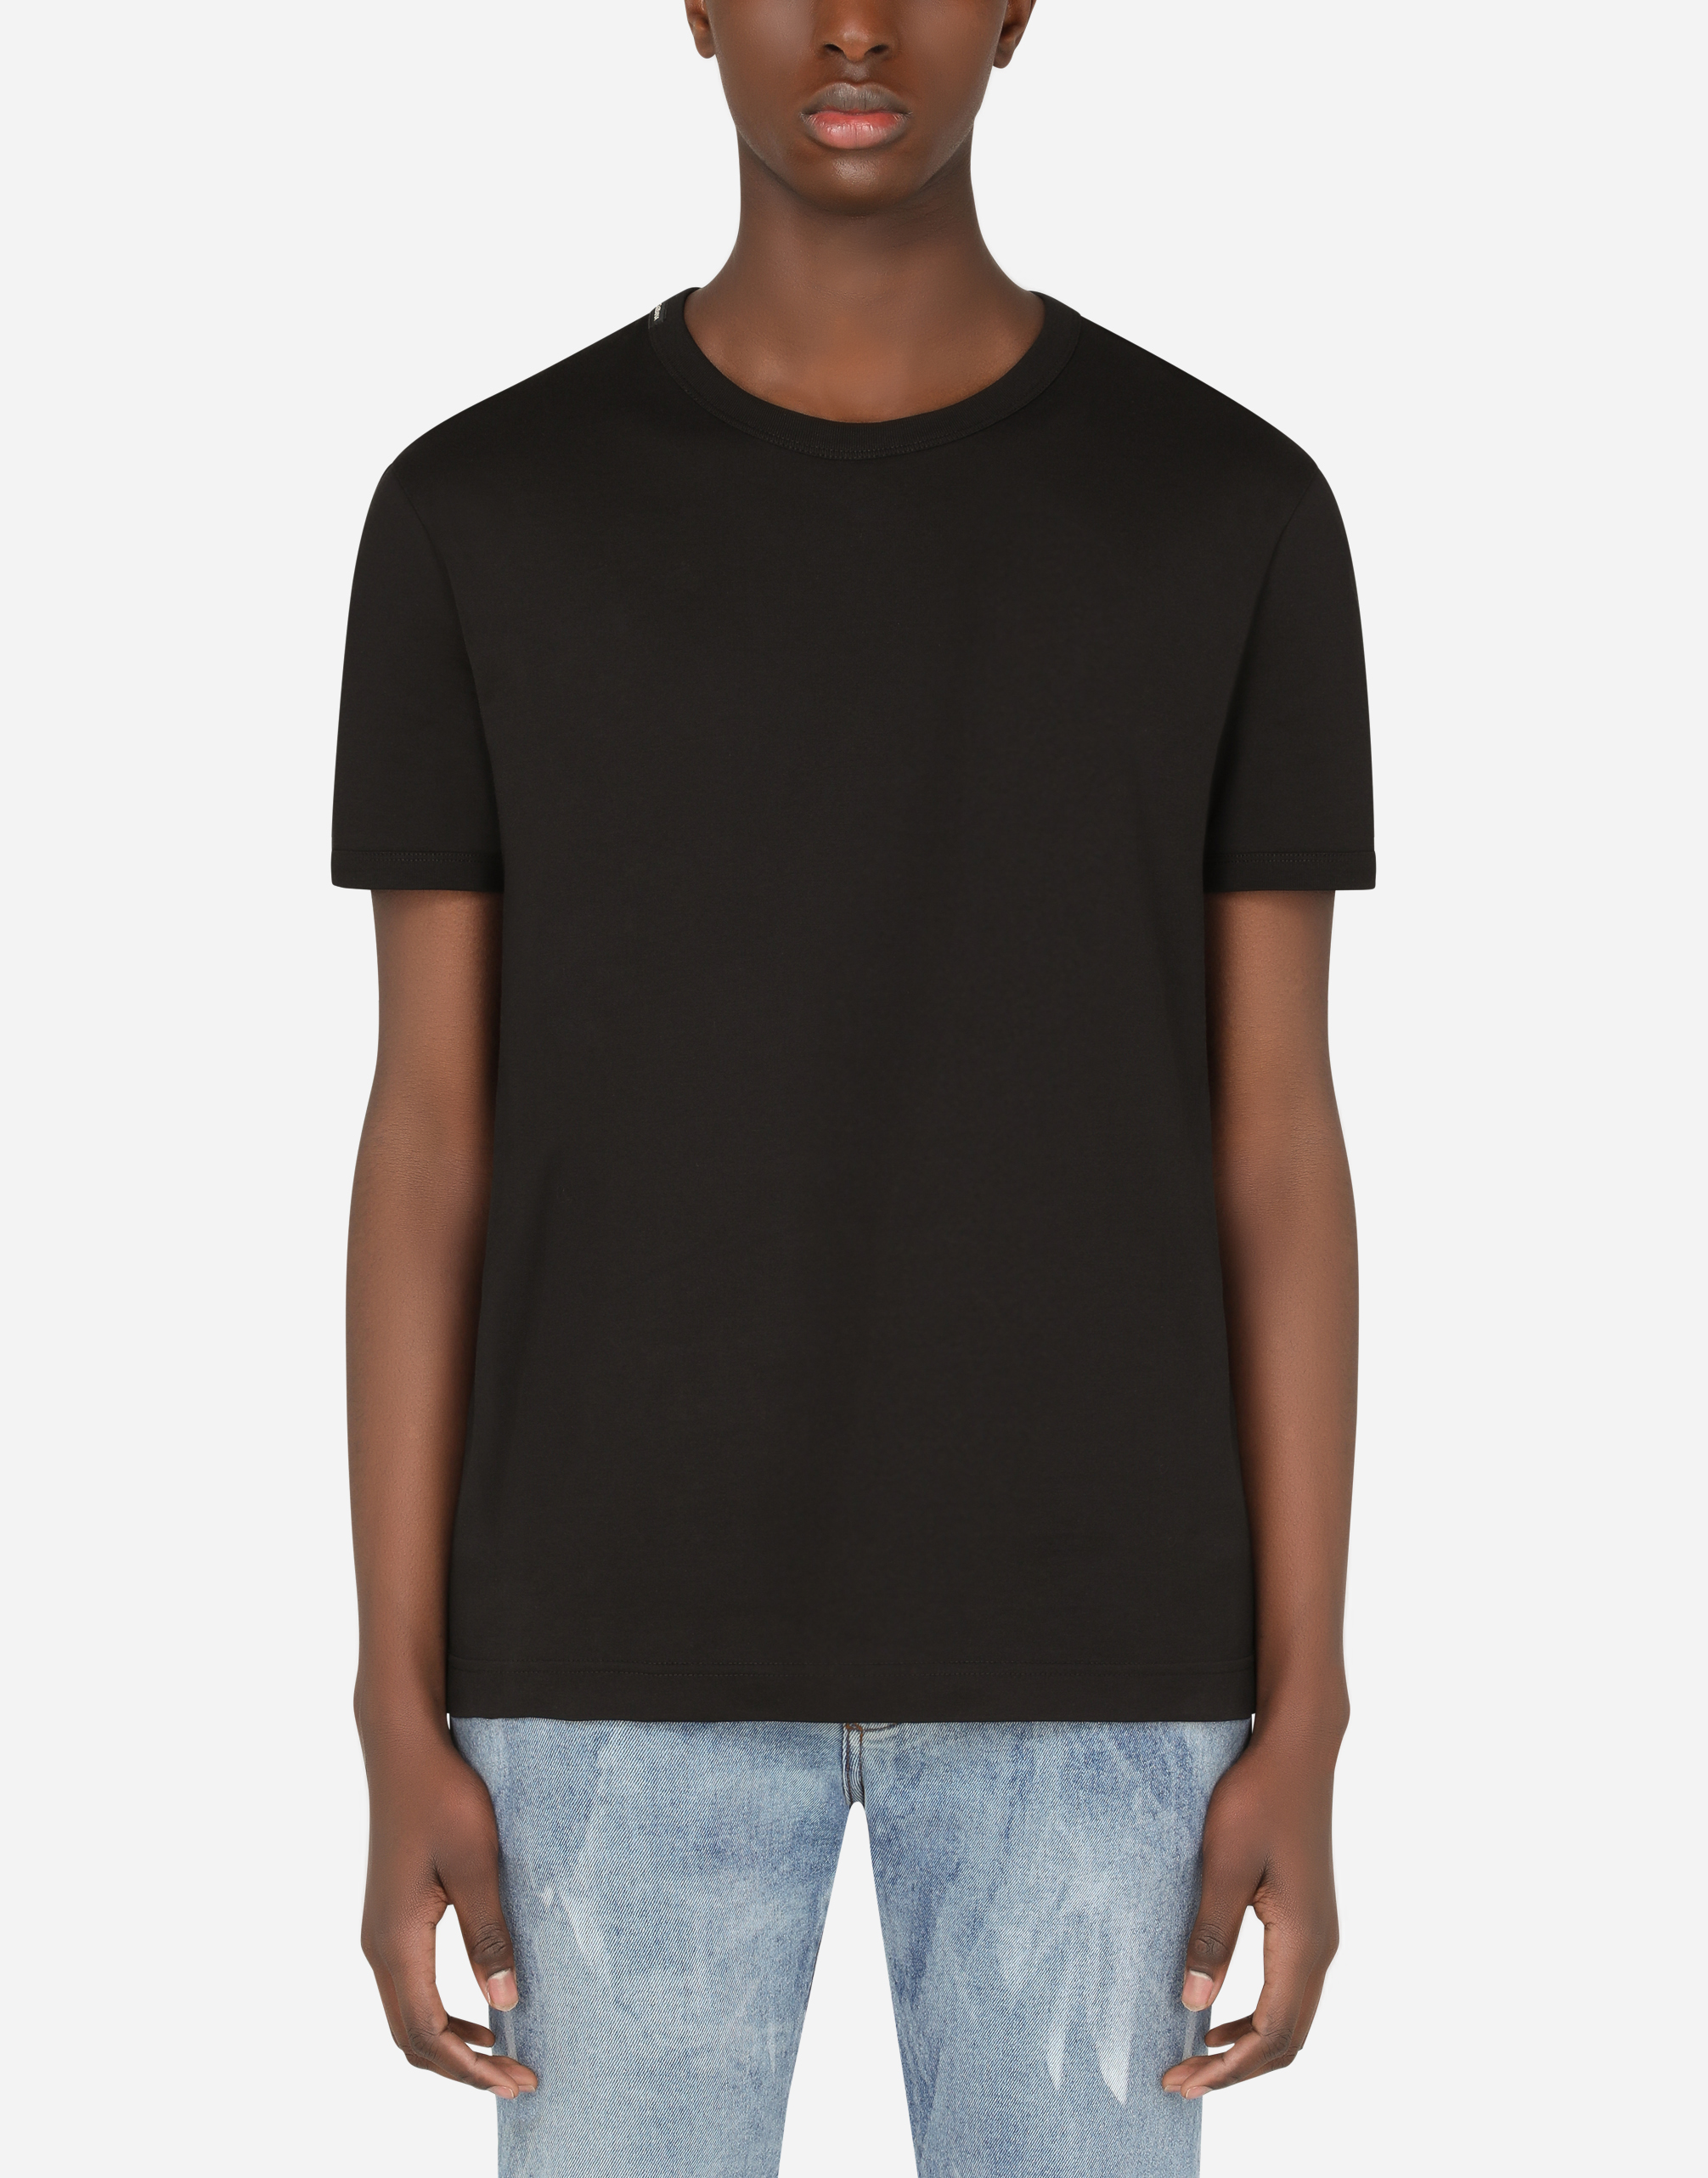 Dolce & Gabbana T-SHIRT IN COTTON